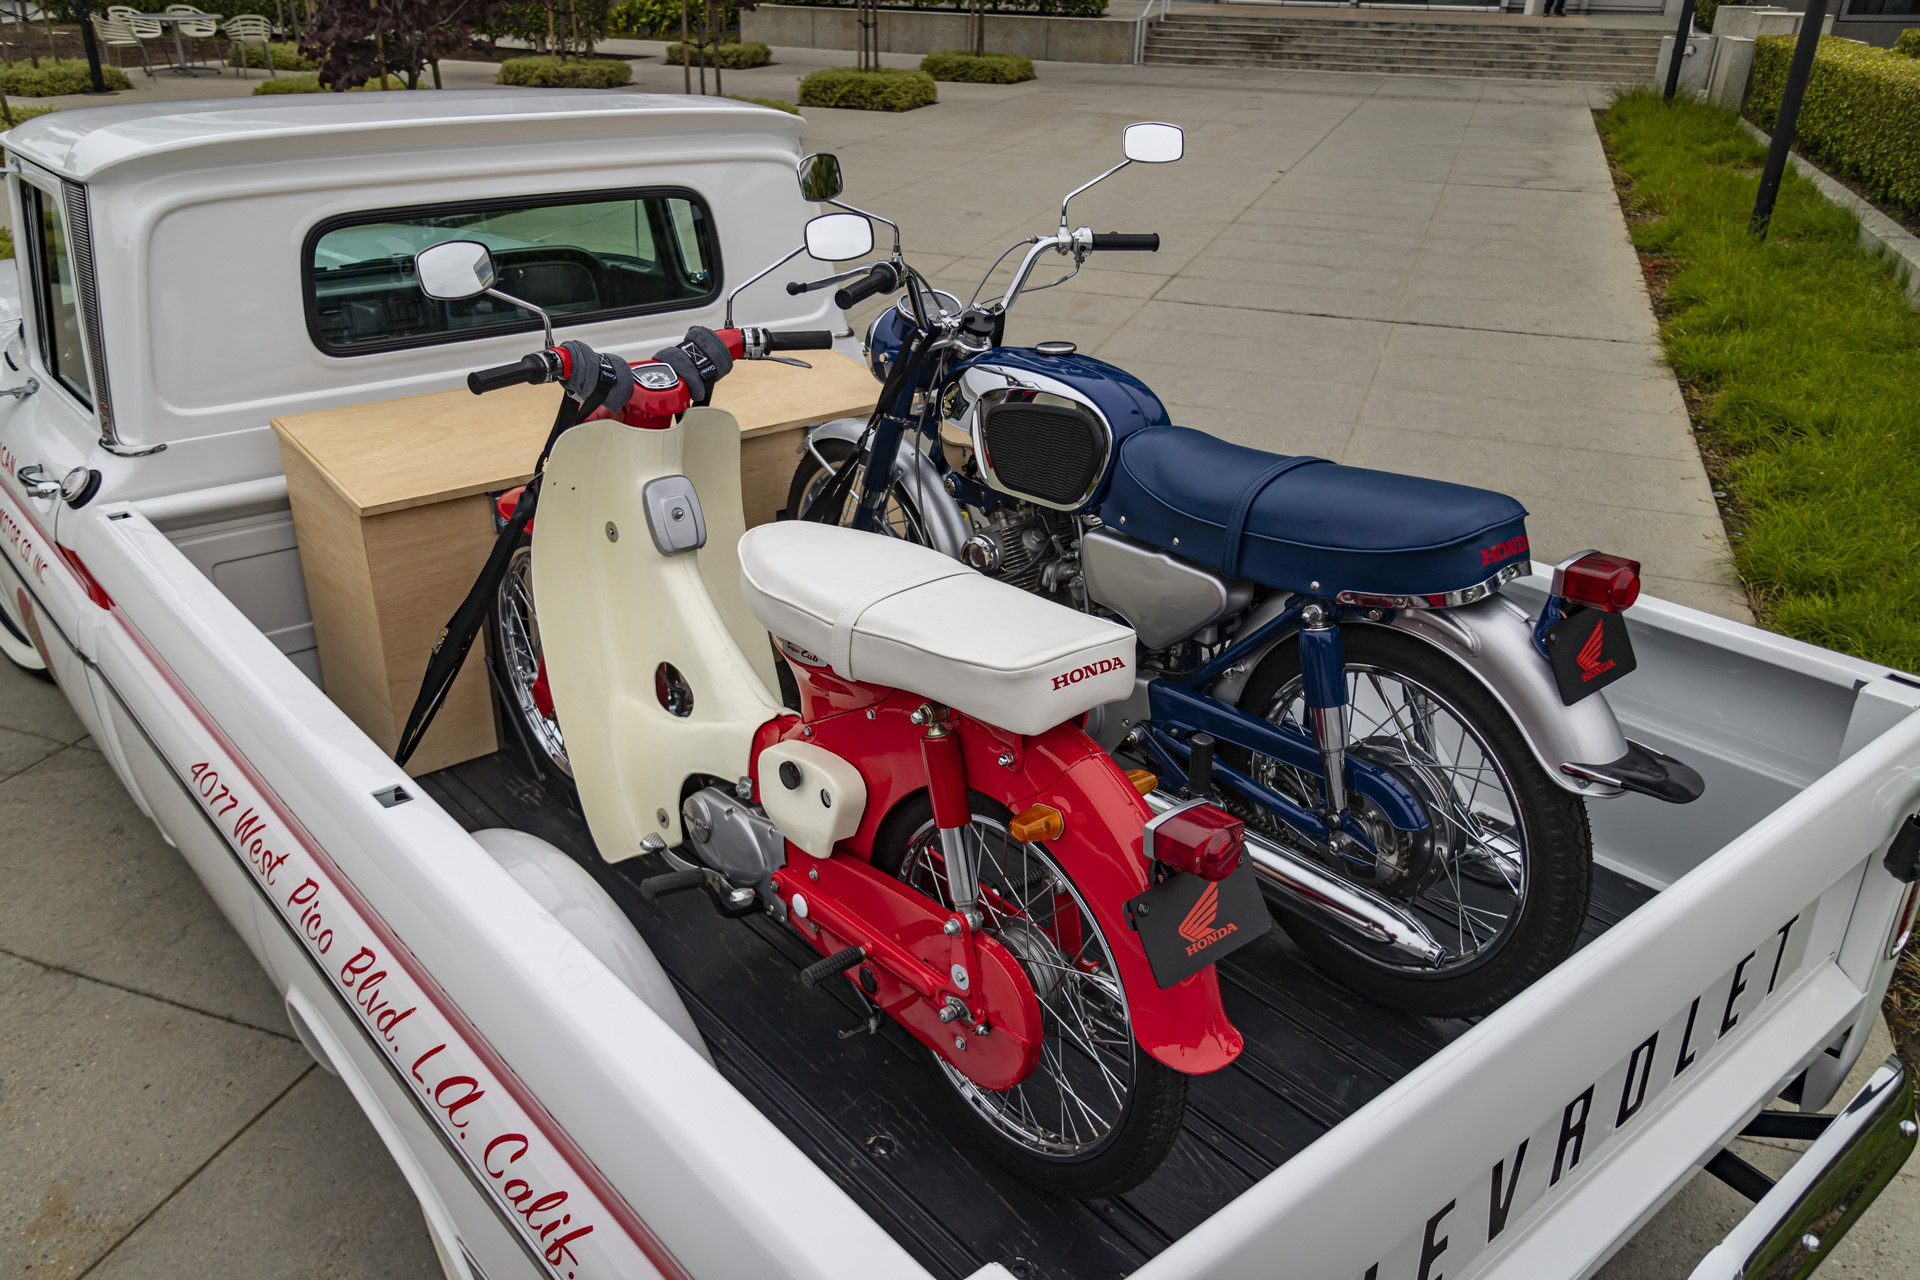 16_American_Honda_60th_Anniversary_Chevy_Delivery_Truck